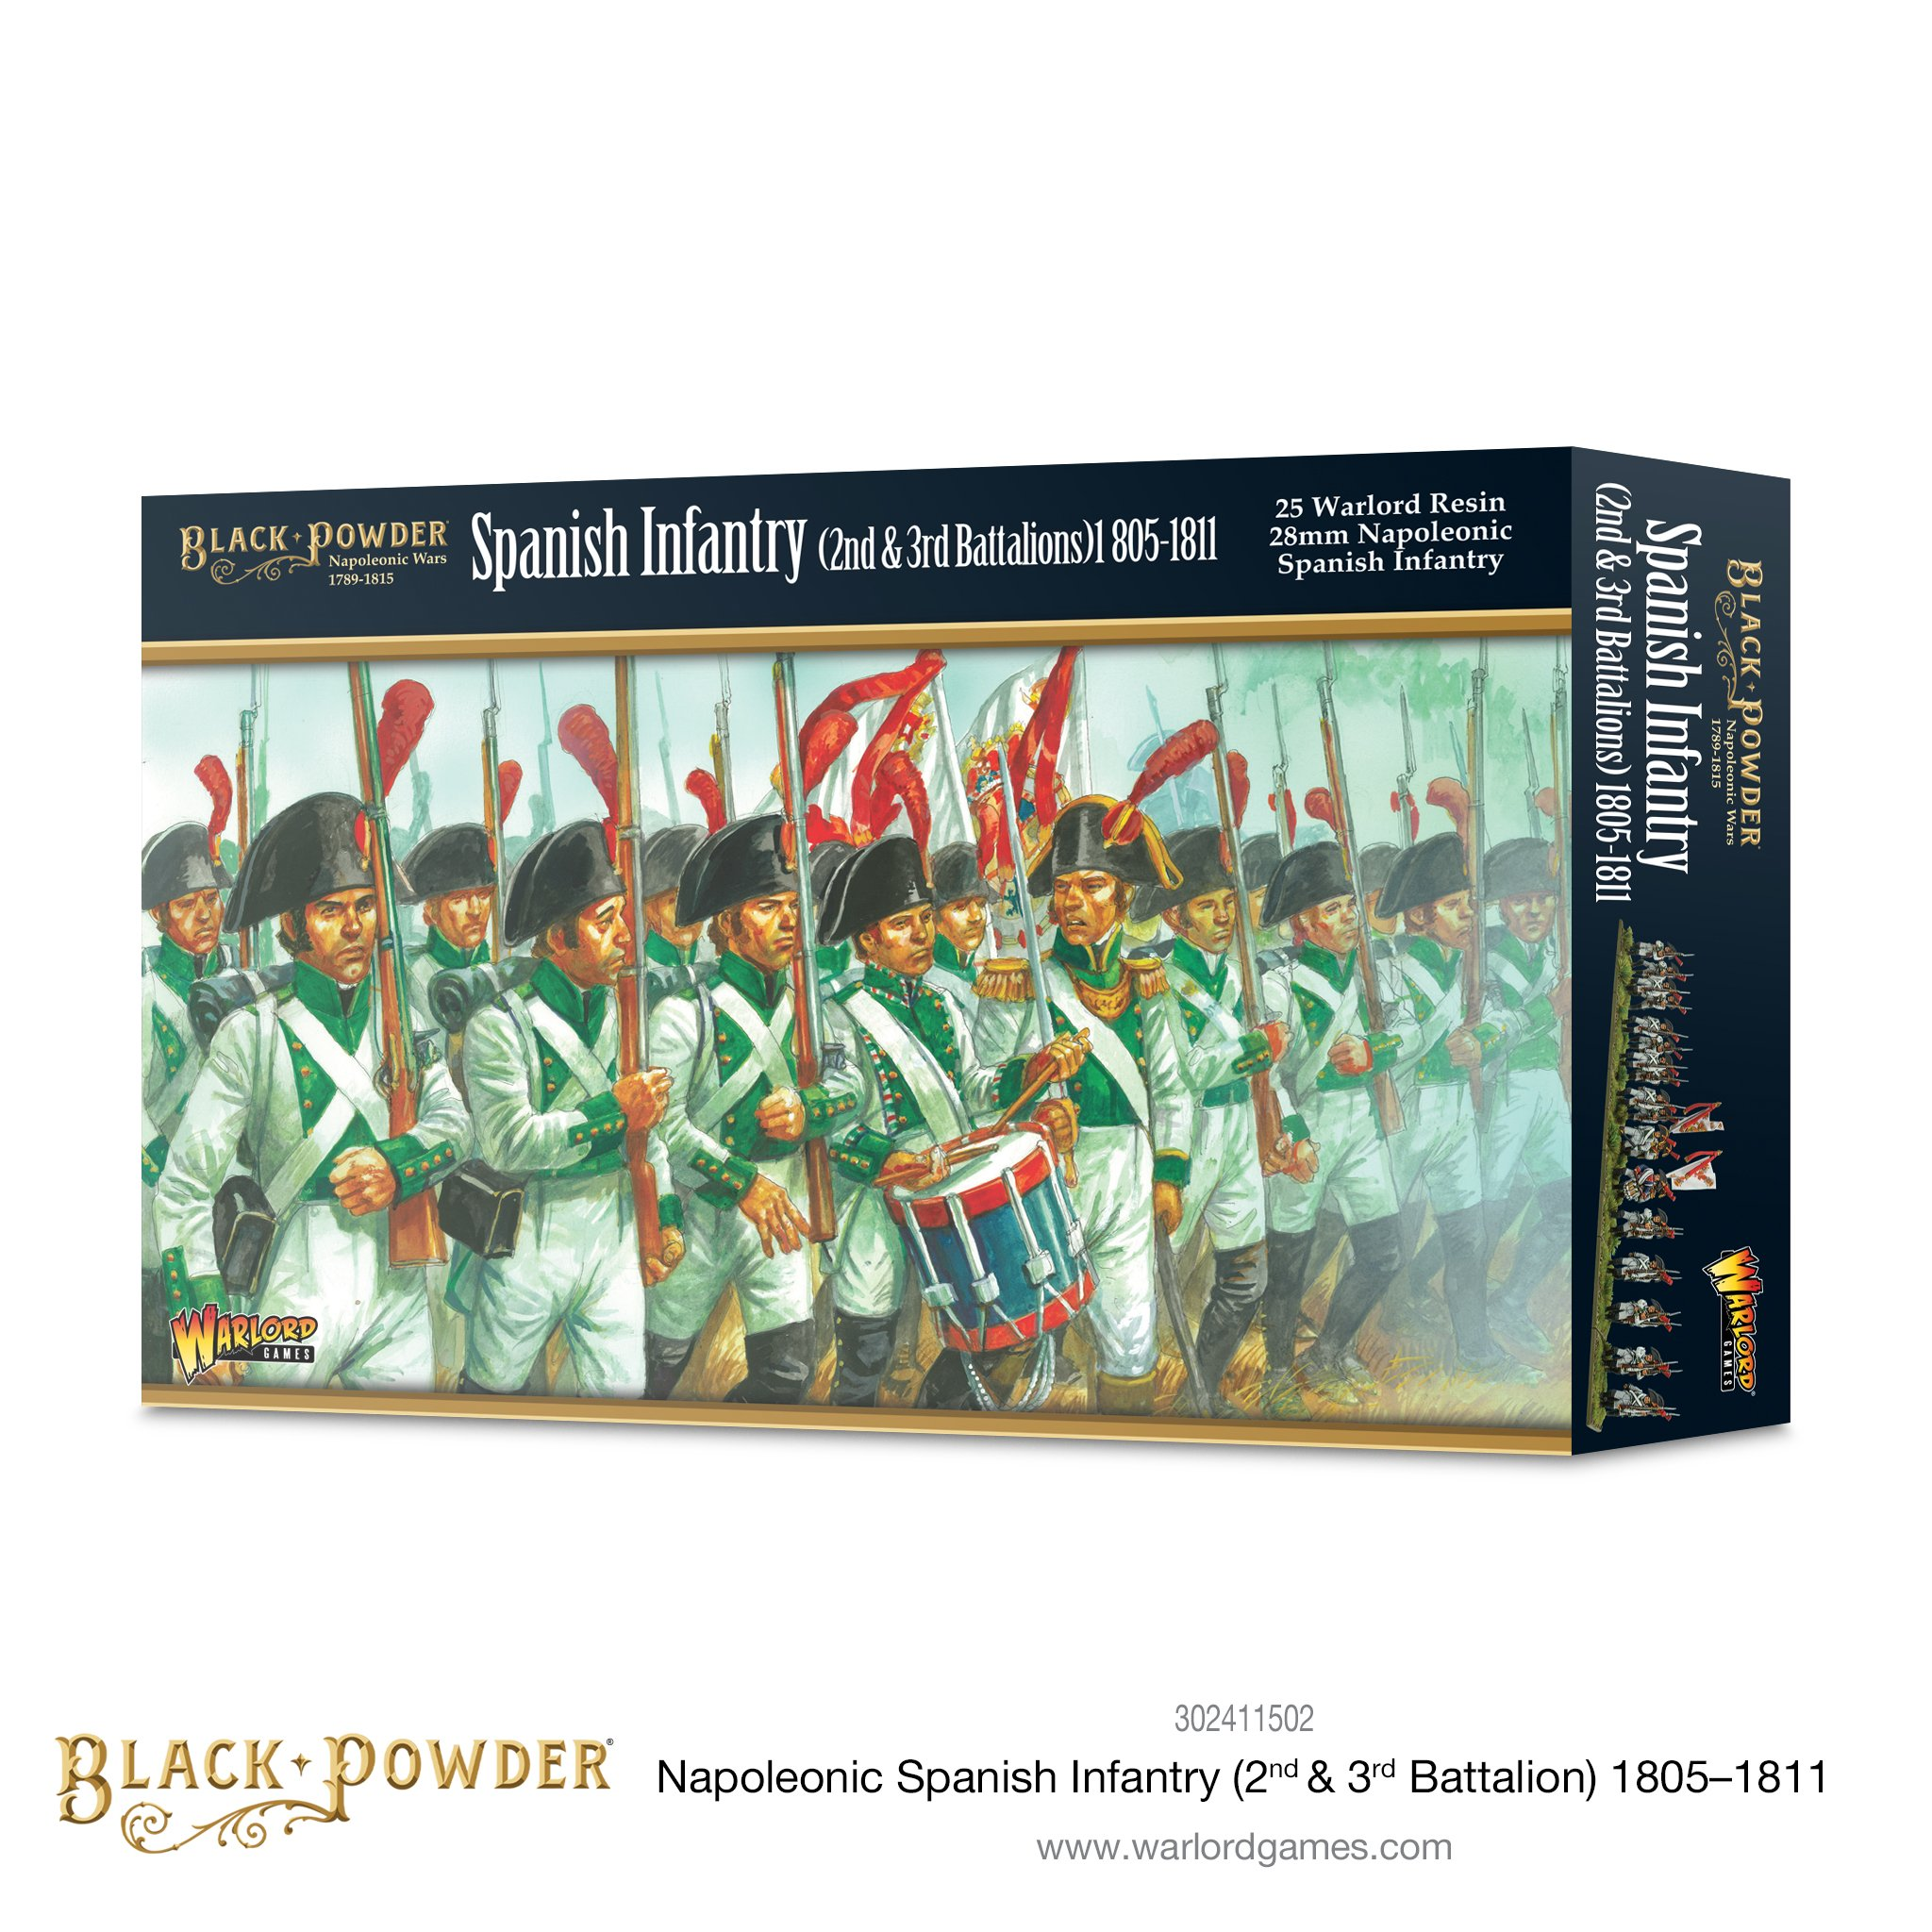 Black Powder Napoleonic Spanish Infantry (2nd & 3rd Battalions)